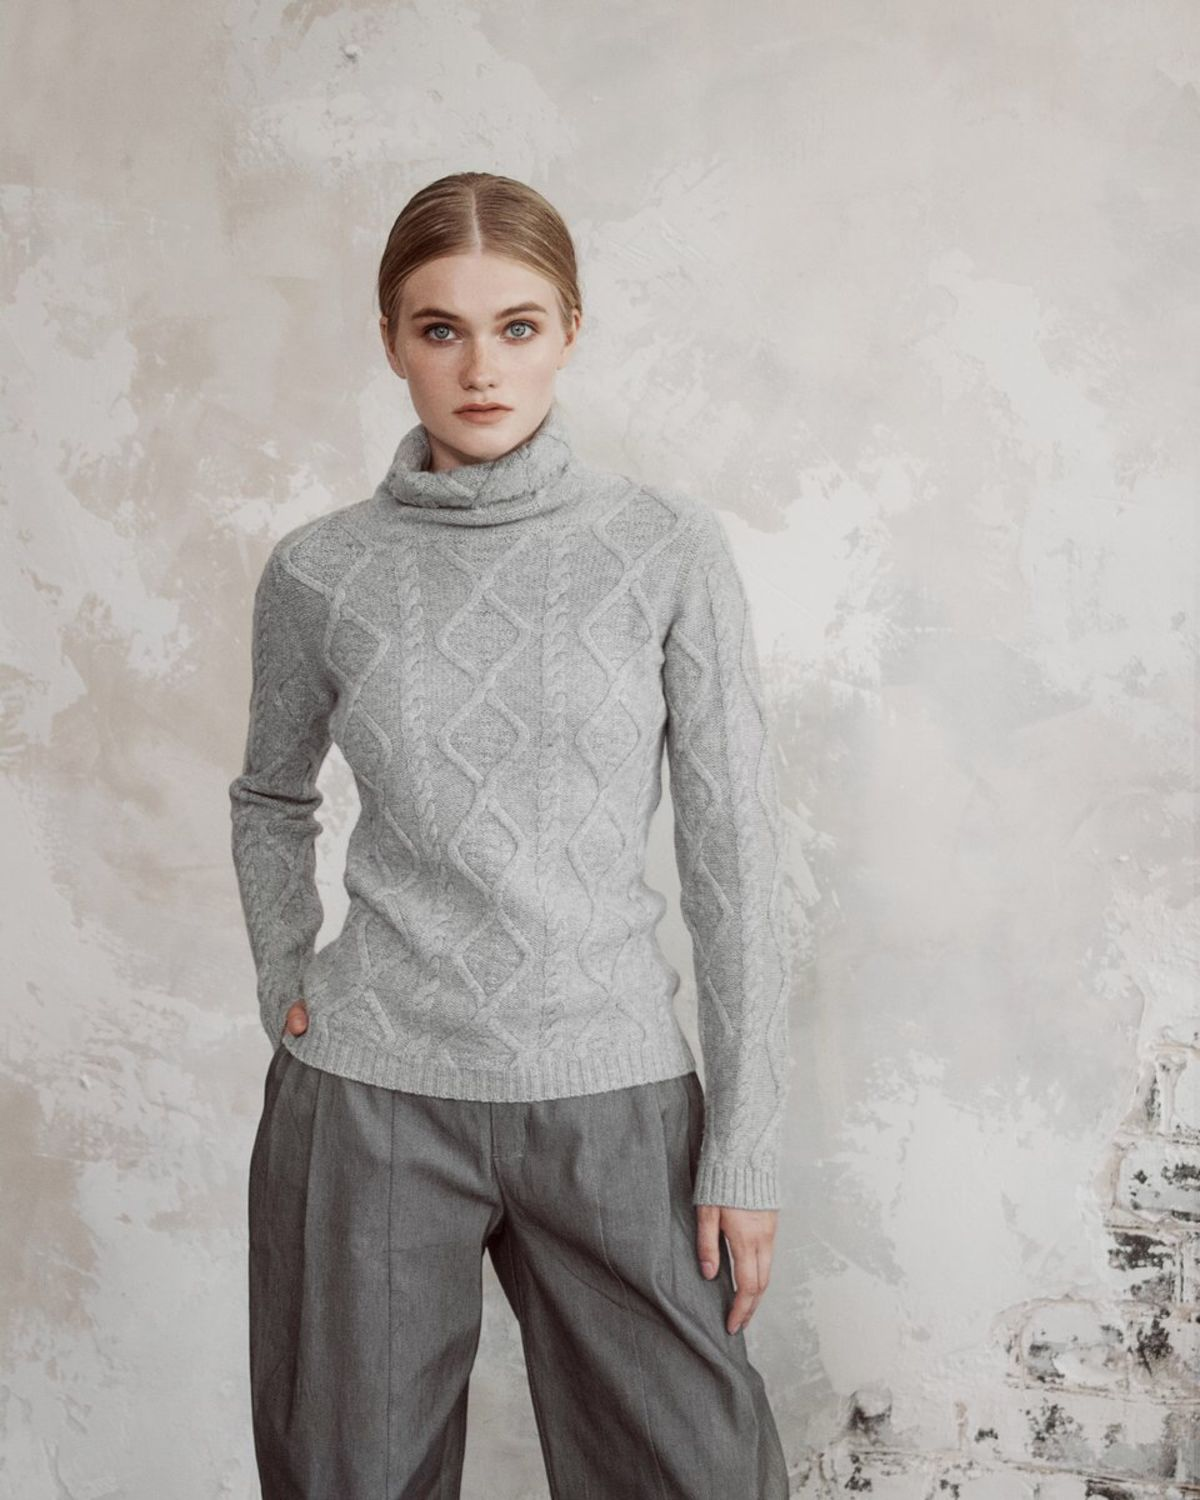 Women's cashmere sweater, Sweaters, Moscow,  Фото №1